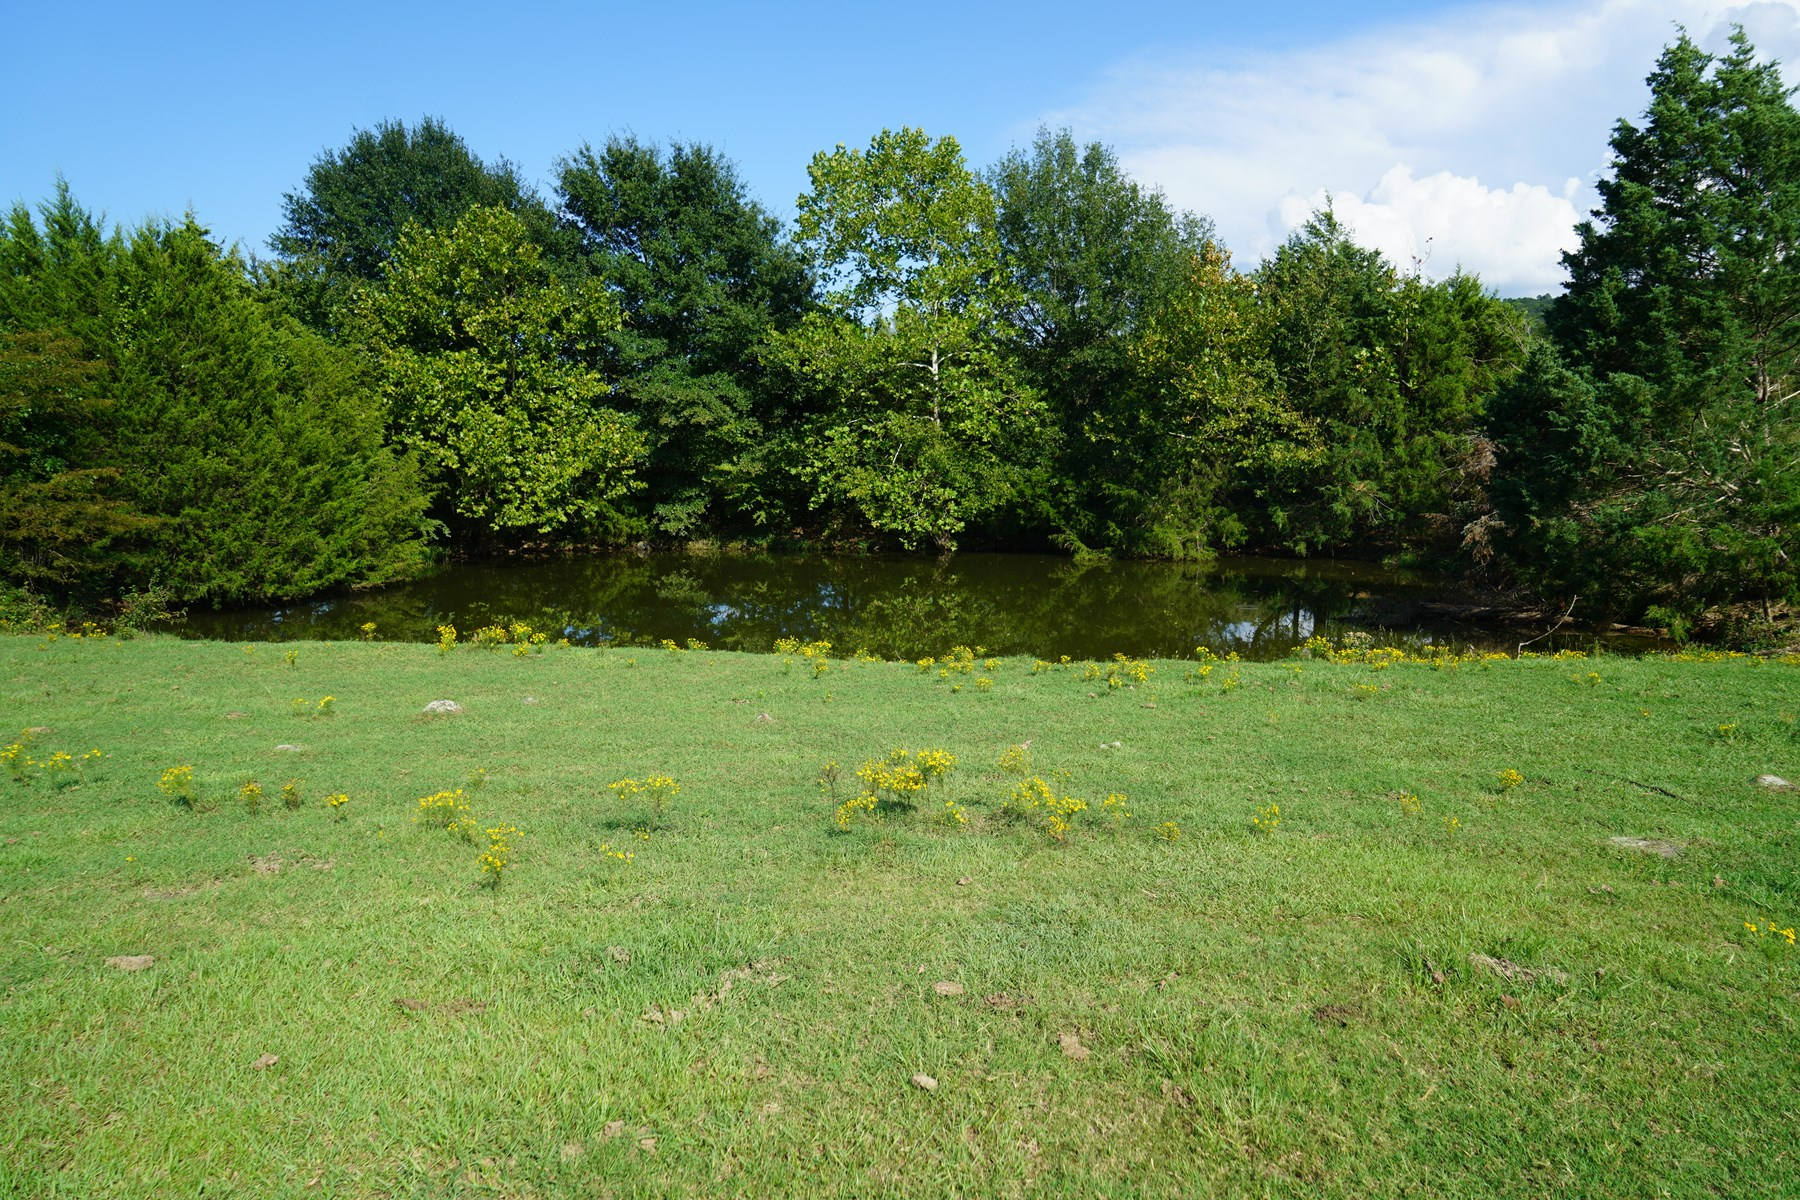 WEST CREEK LATIMER COUNTY RANCH PROPERTY